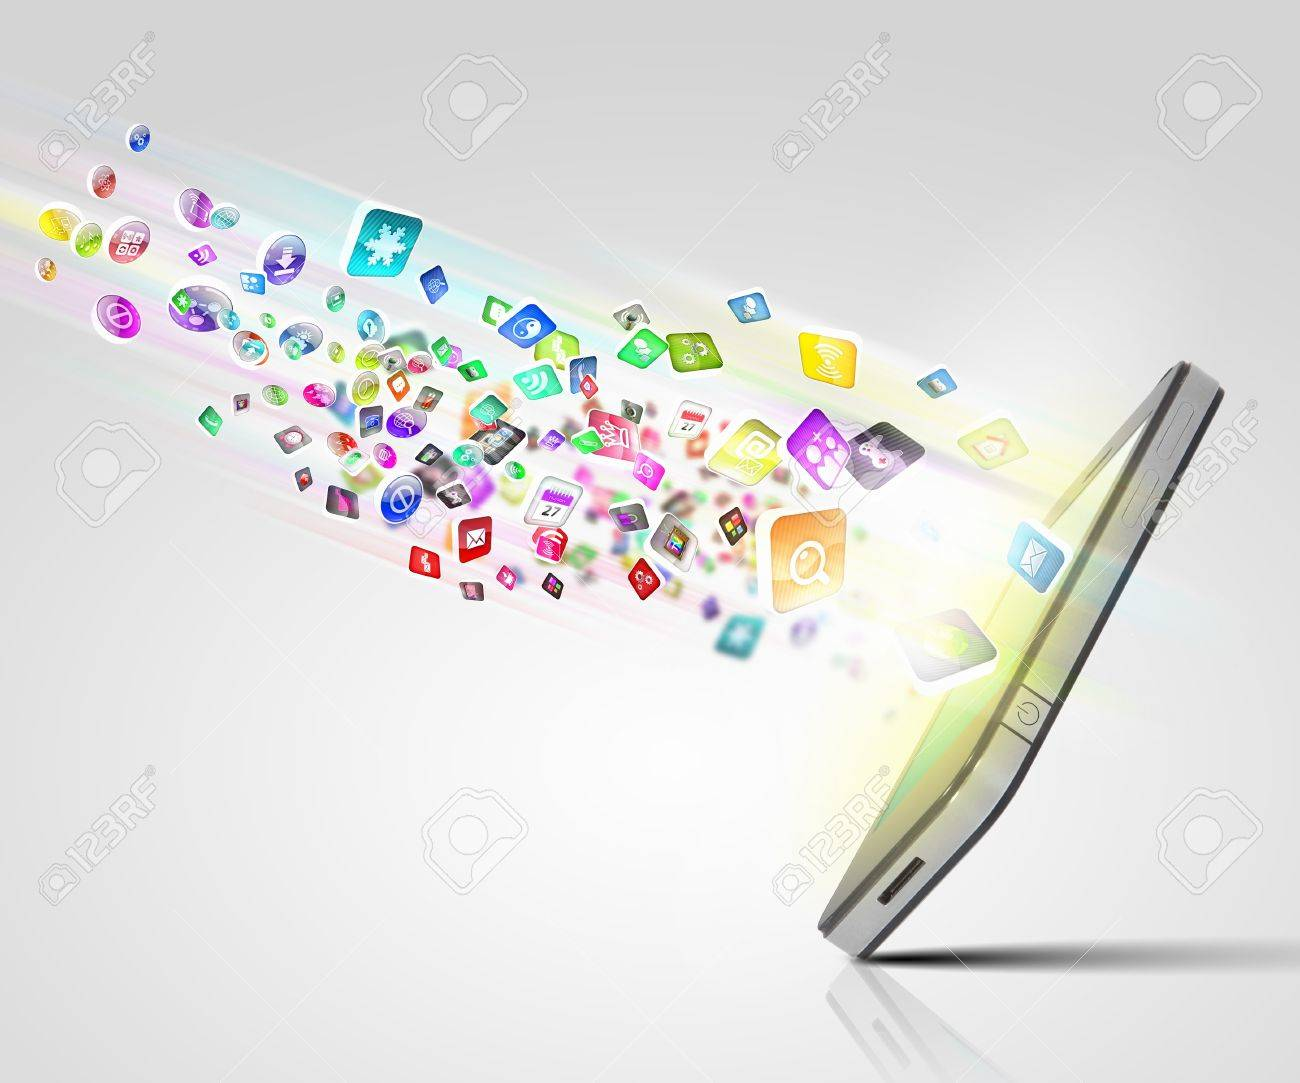 Media technology illustration with mobile phone and icons Stock Illustration - 16995837